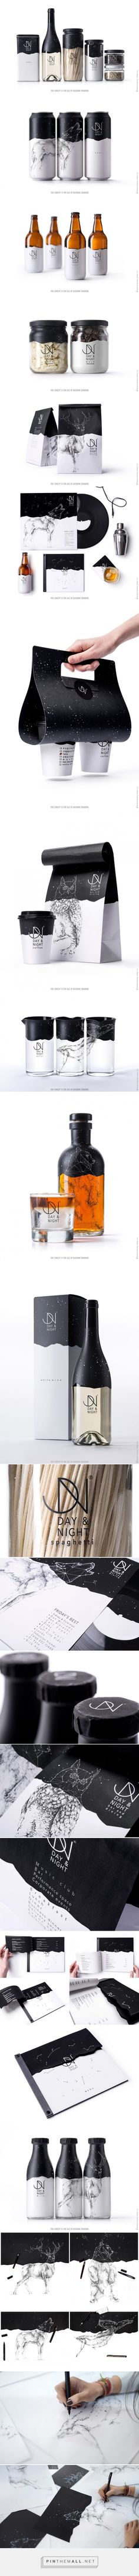 Day & Night packaging designed by Backbone Branding (Armenia) - http://www.packagingoftheworld.com/2016/03/day-night.html